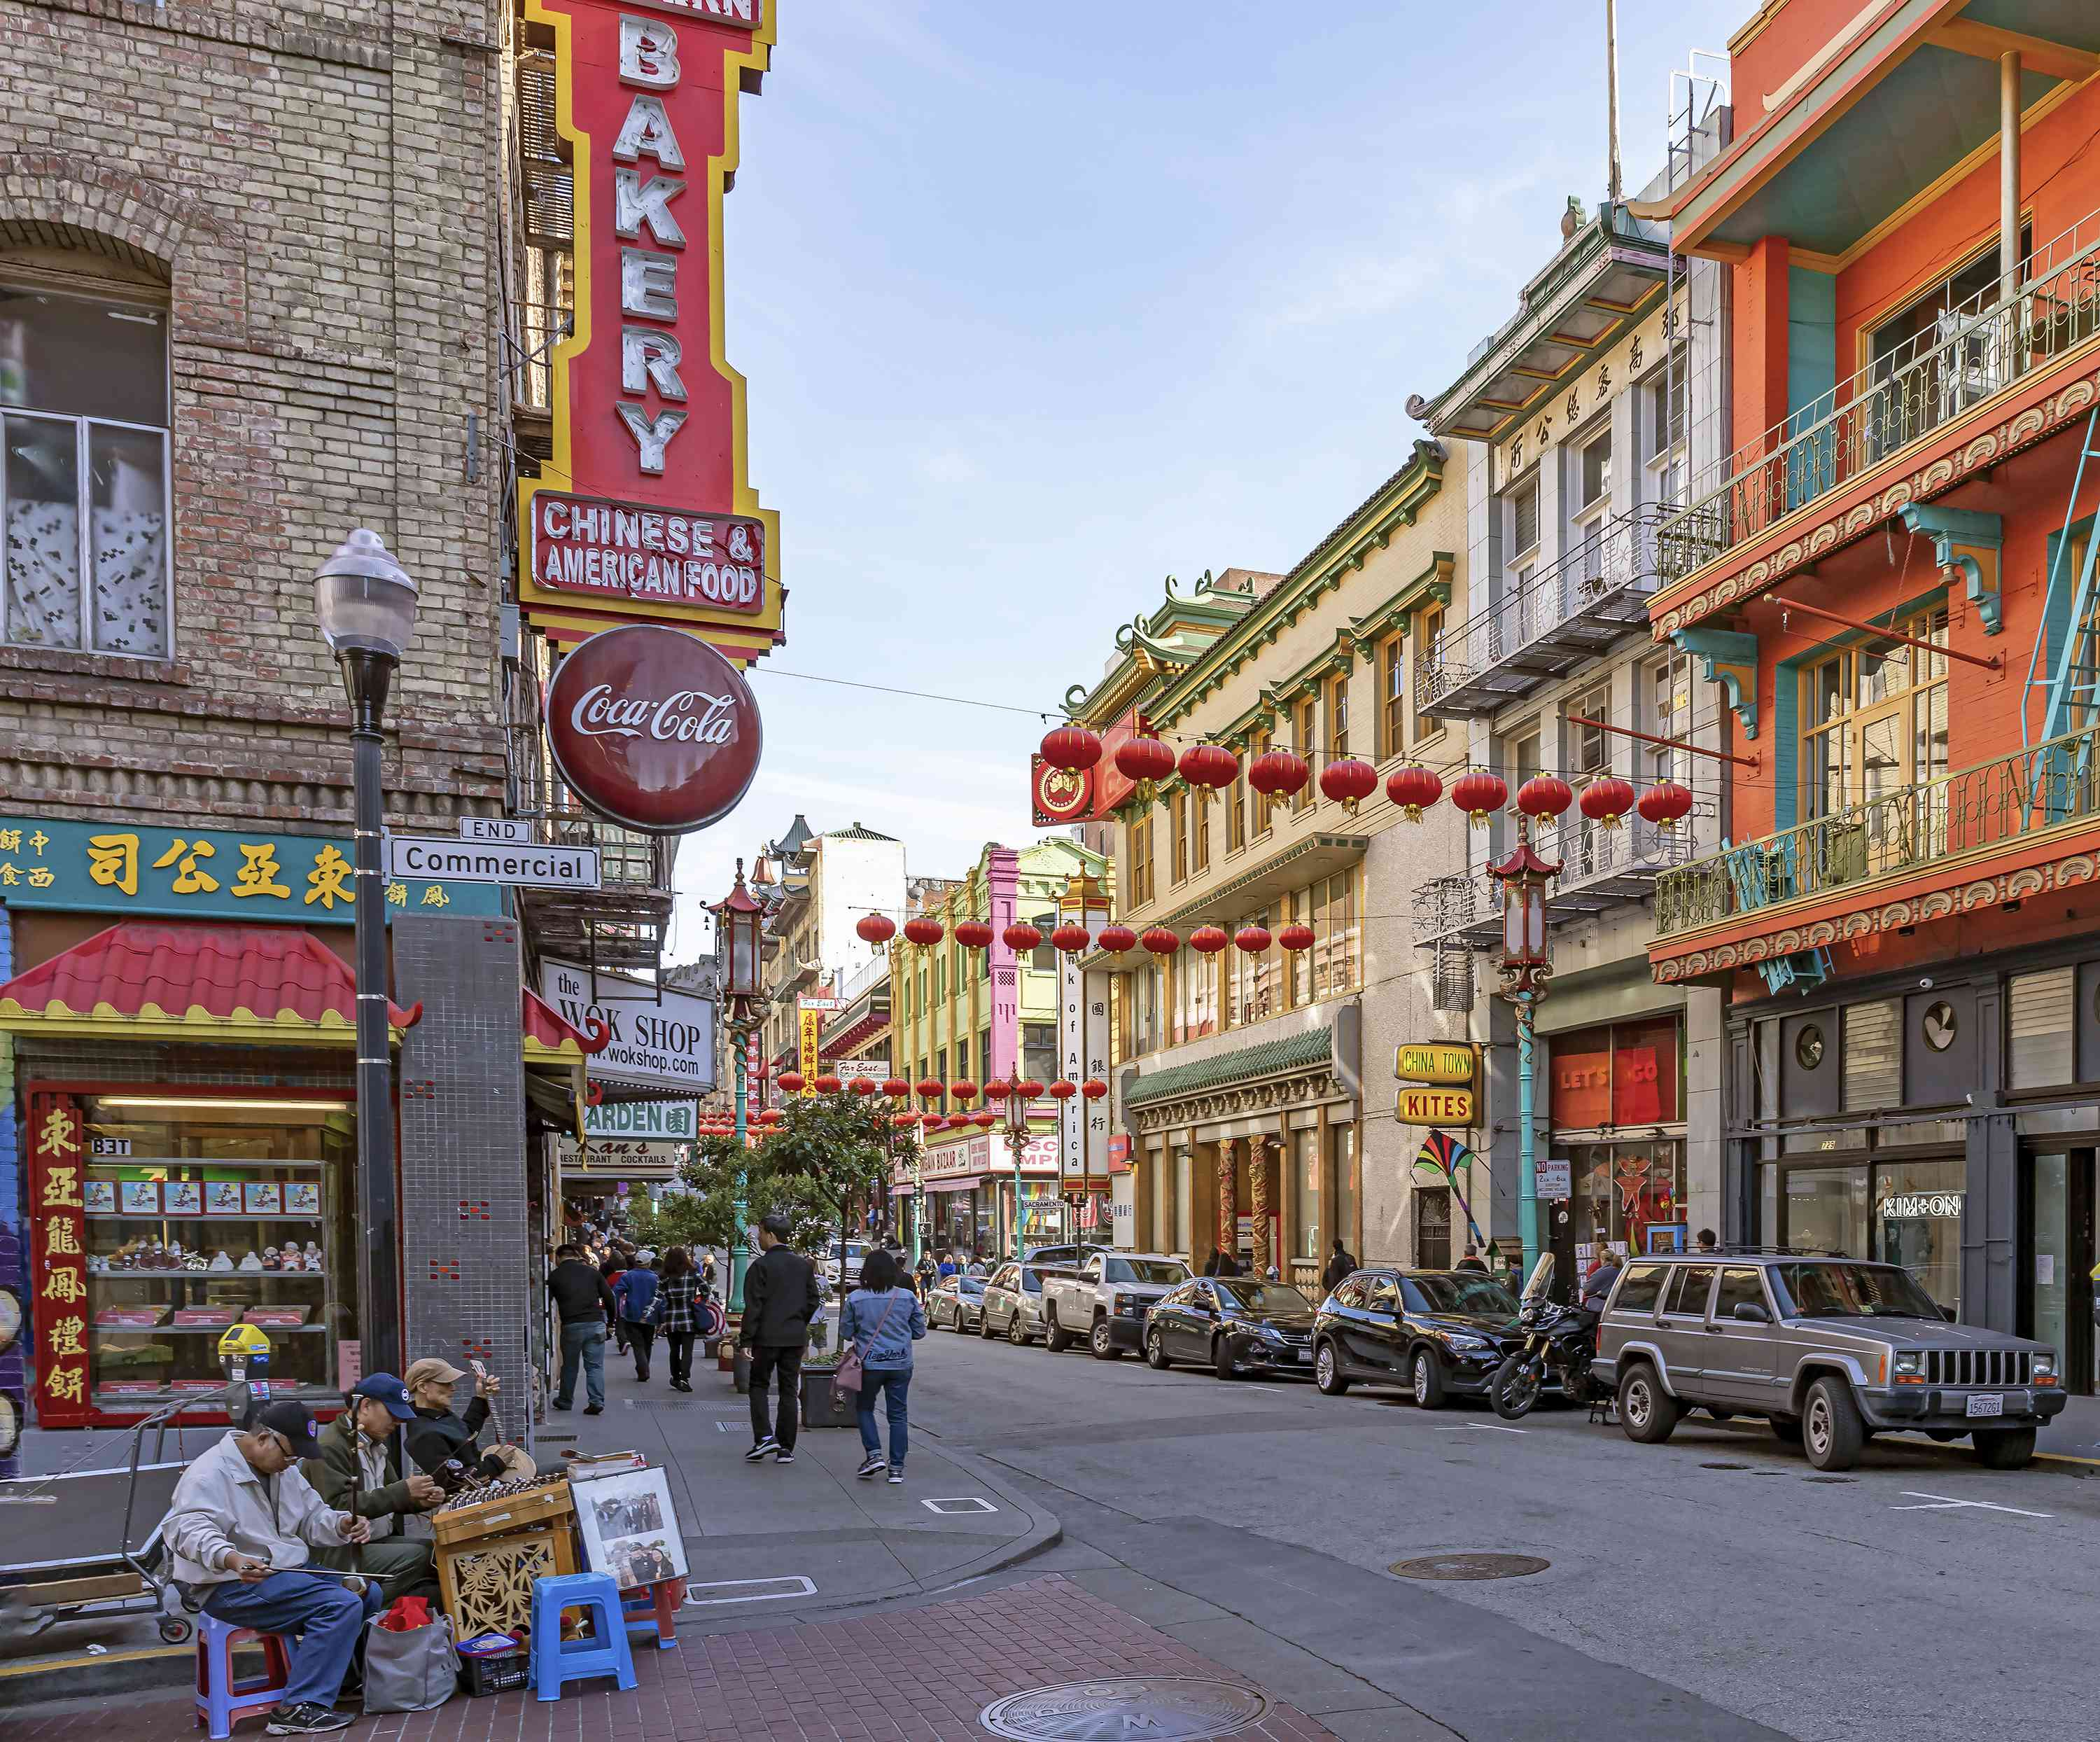 A street shot of Chinatown with colorful shops